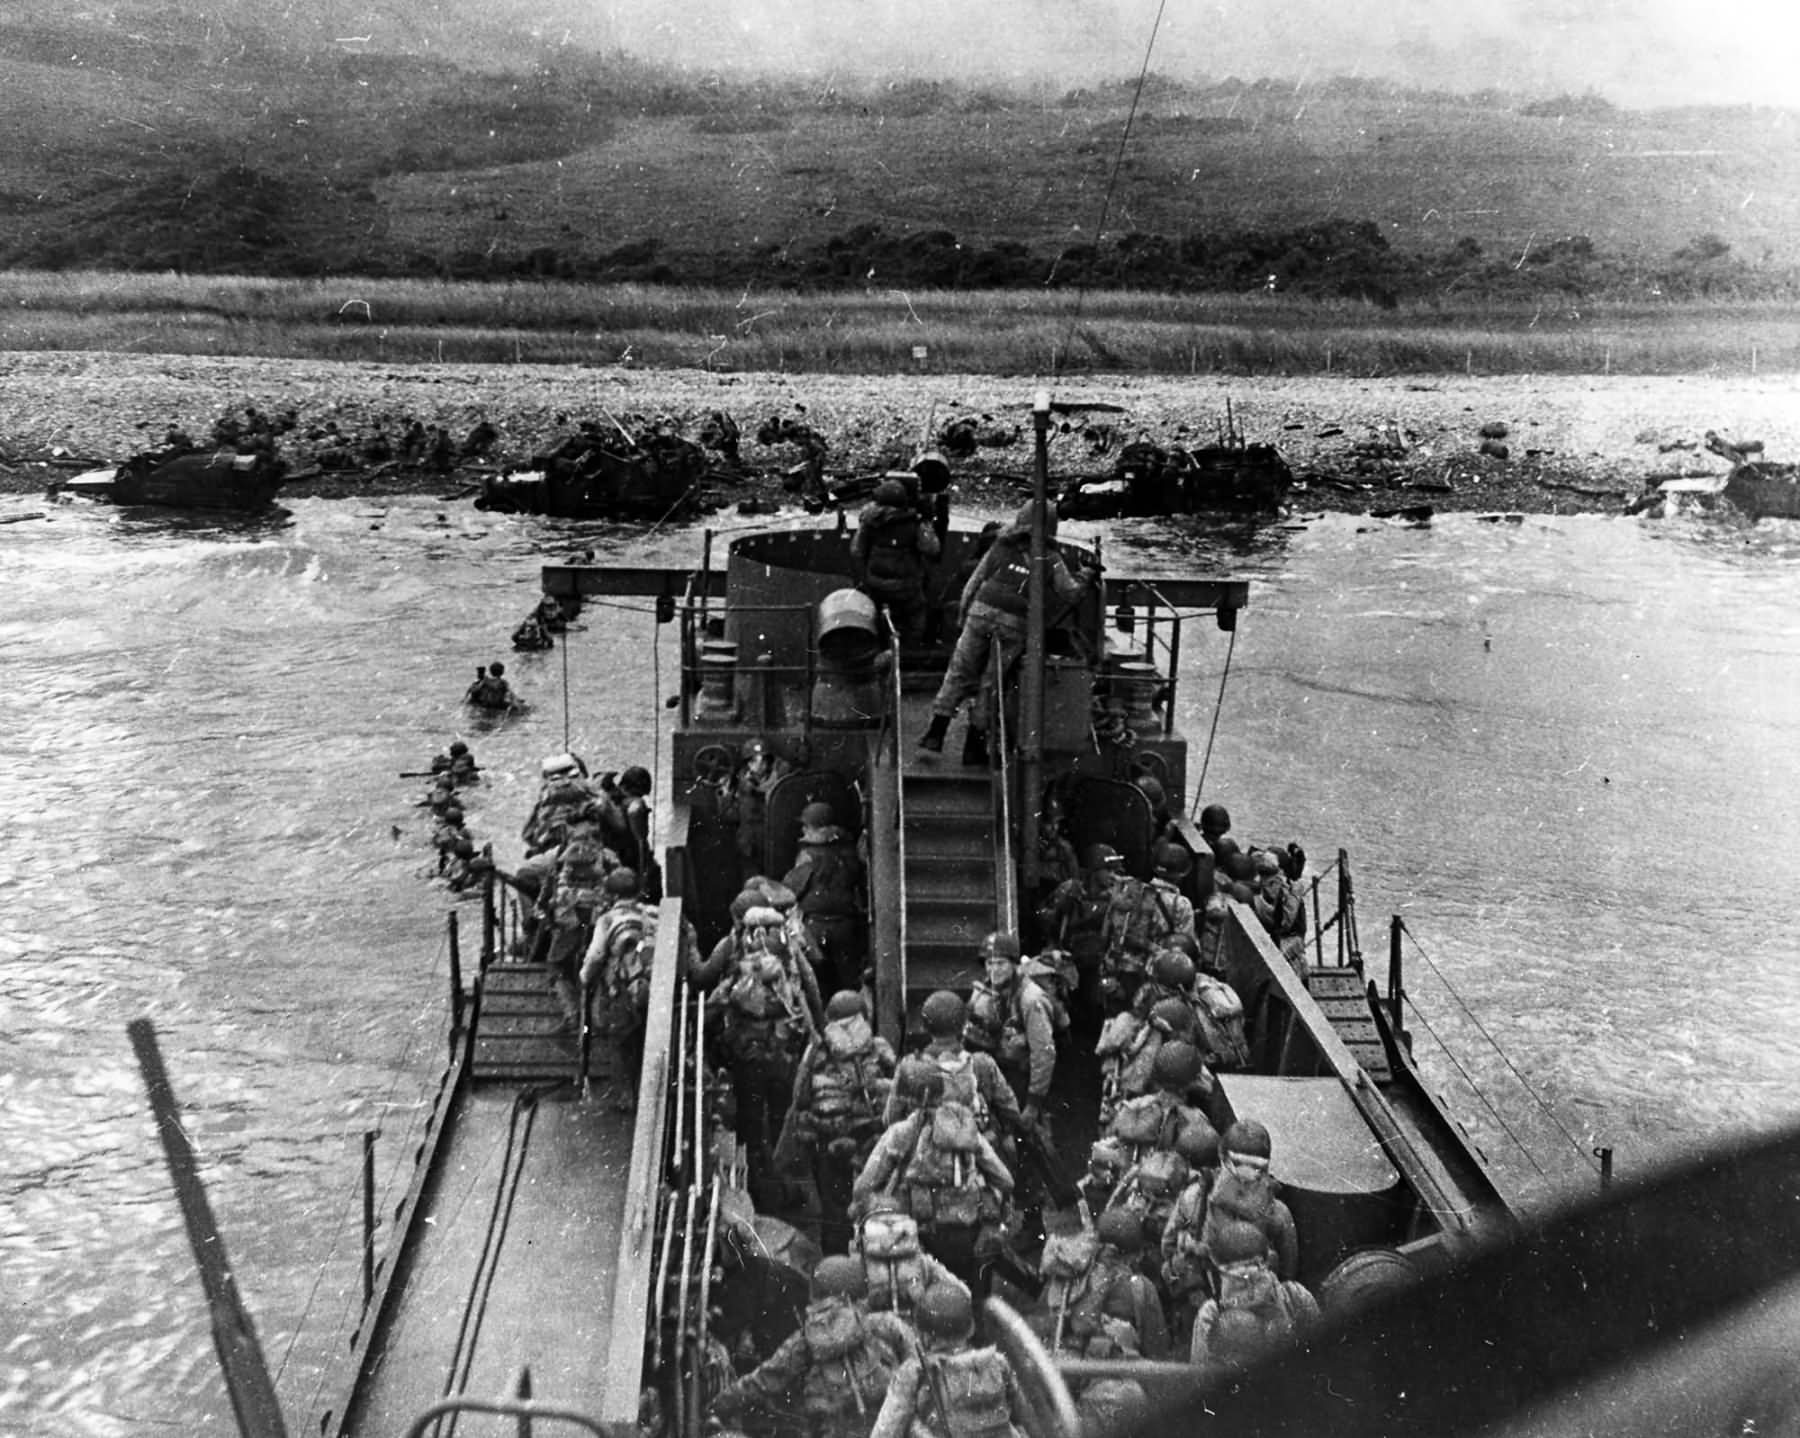 US Troops land from USS LCI(L)-412 during the D-Day assault on Omaha Beach, 6 June 1944